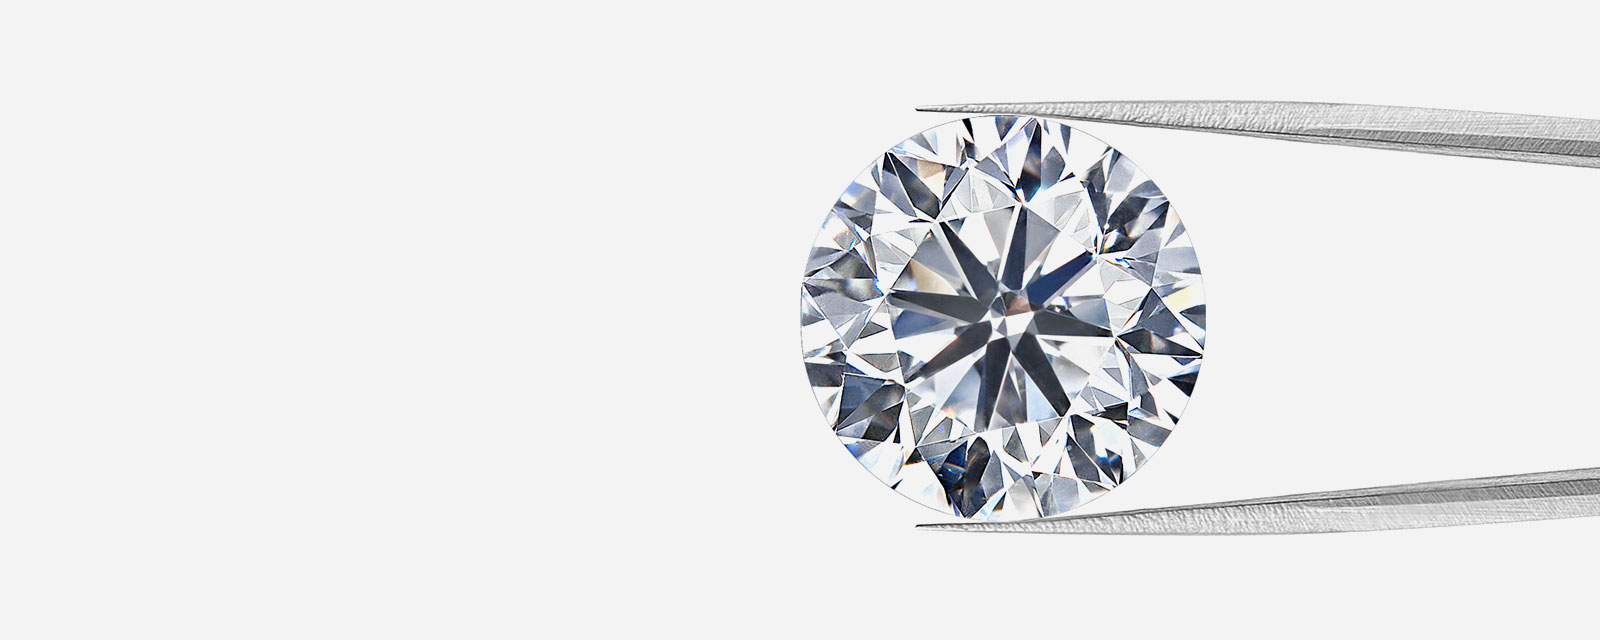 Find Your Perfect Diamond Browse our extensive selection of natural and lab-grown diamonds. Taylors Jewellers Alliston, ON